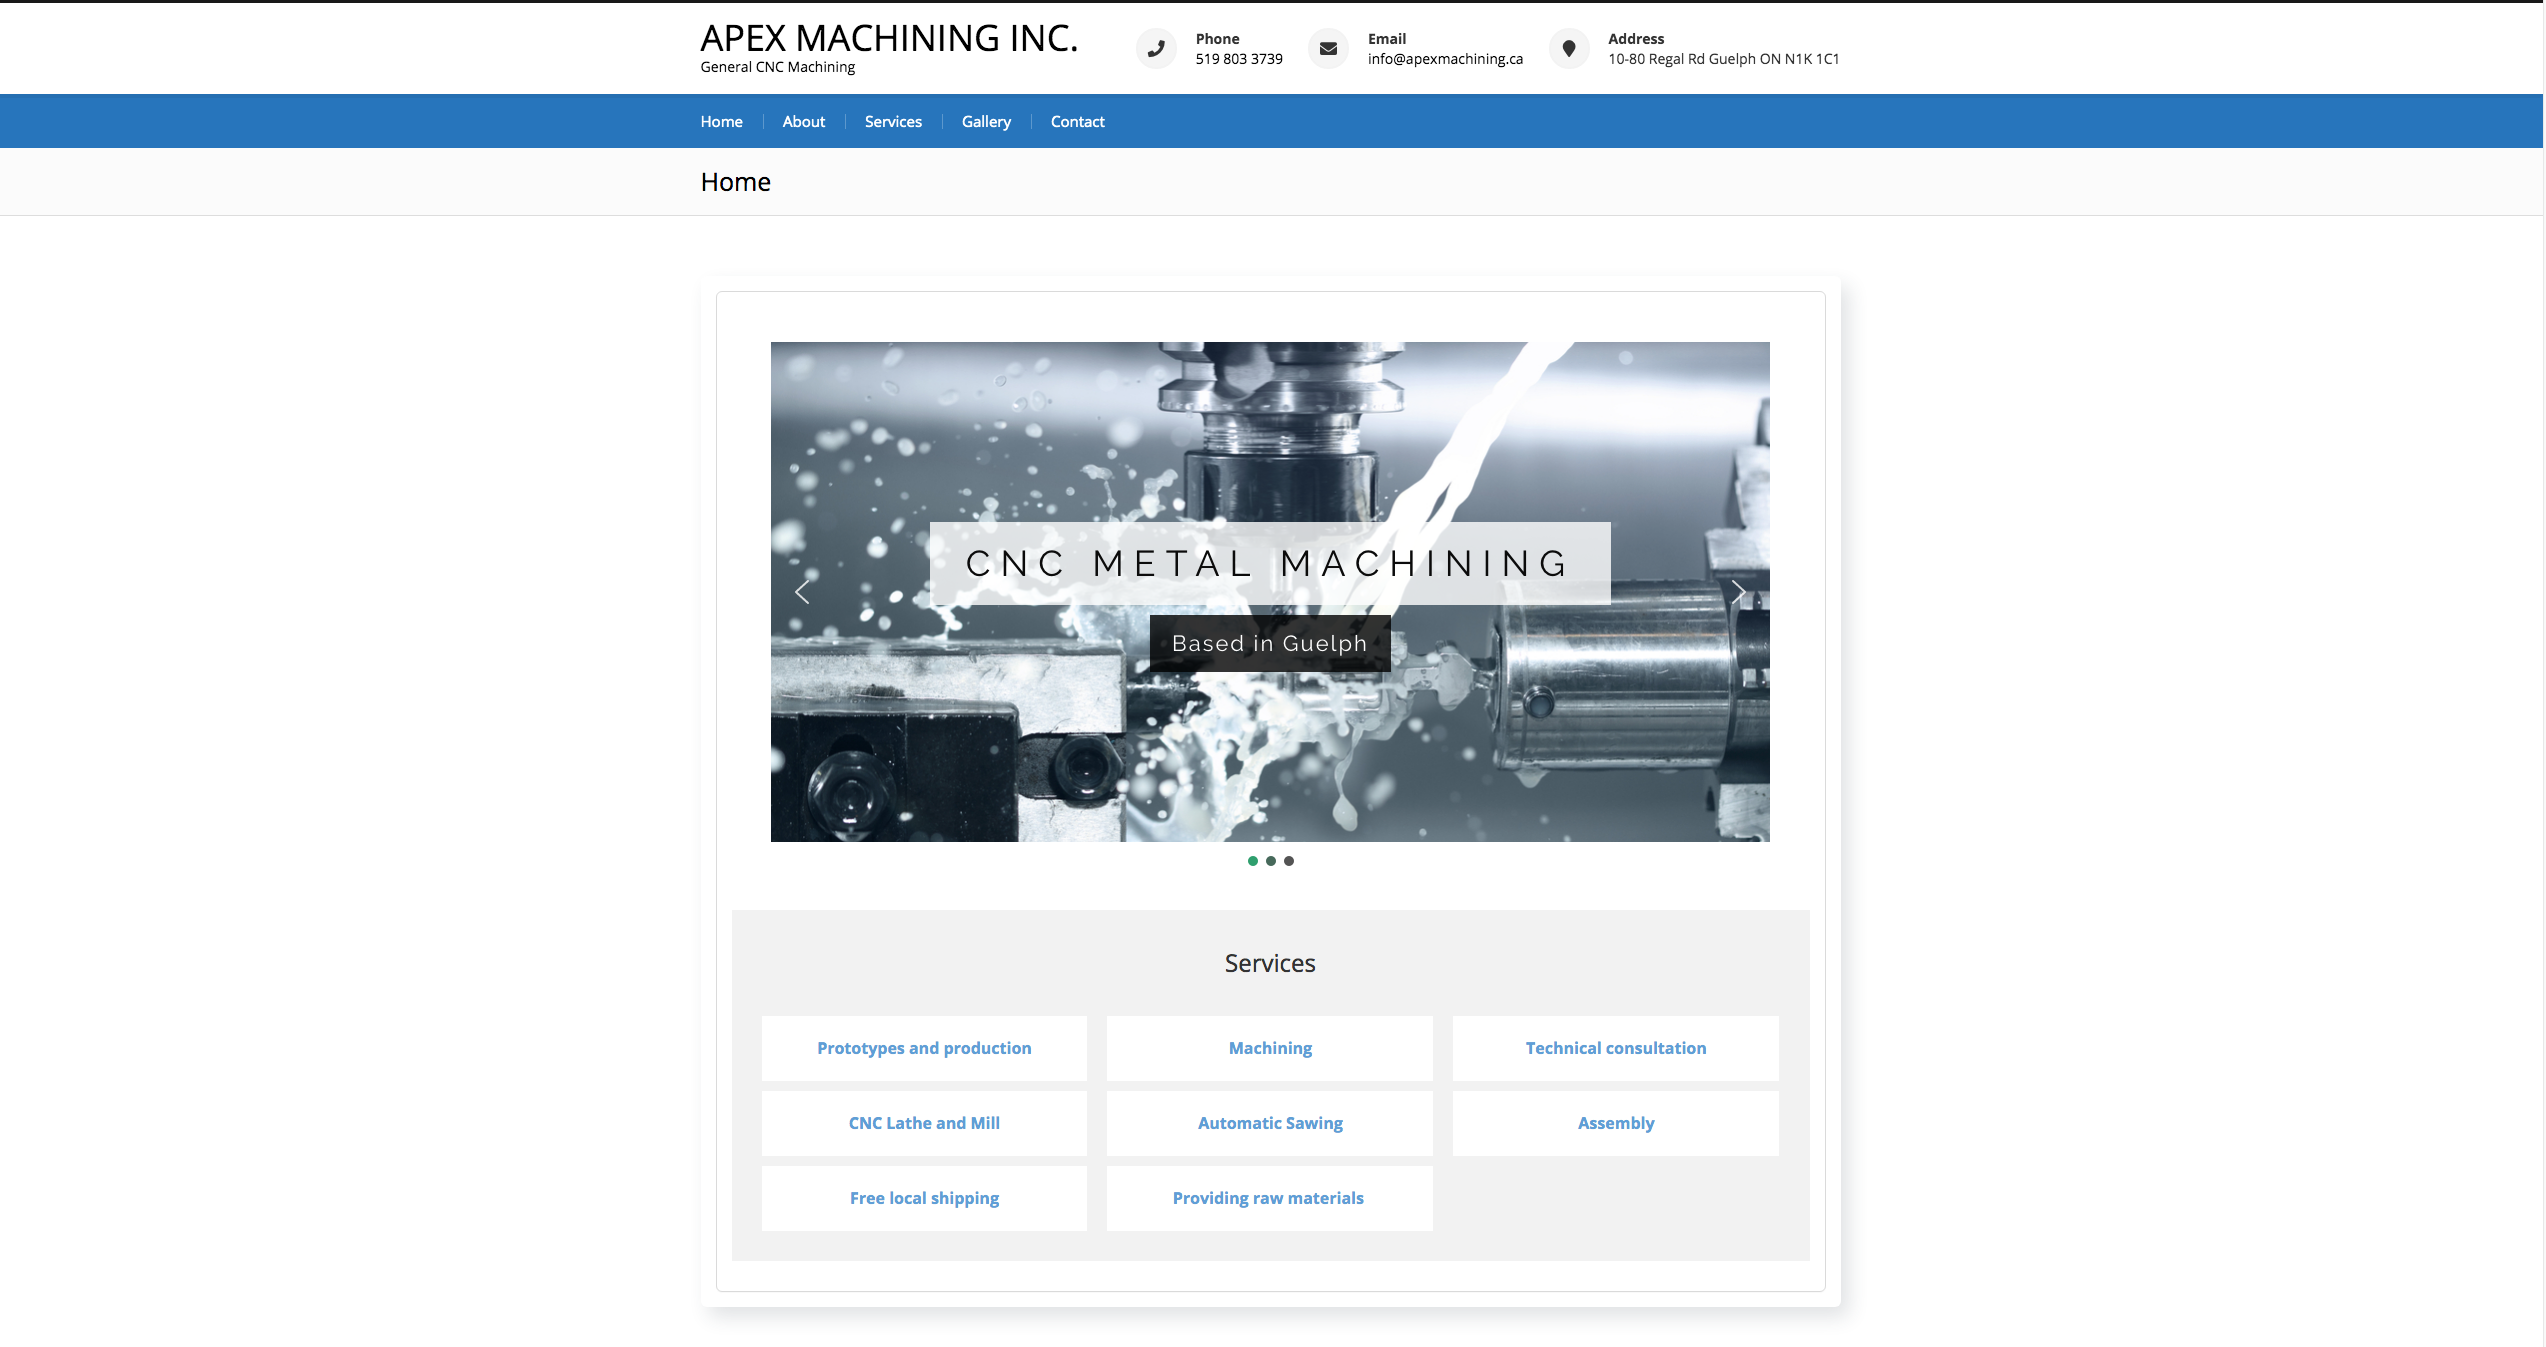 Apex Machining Inc website